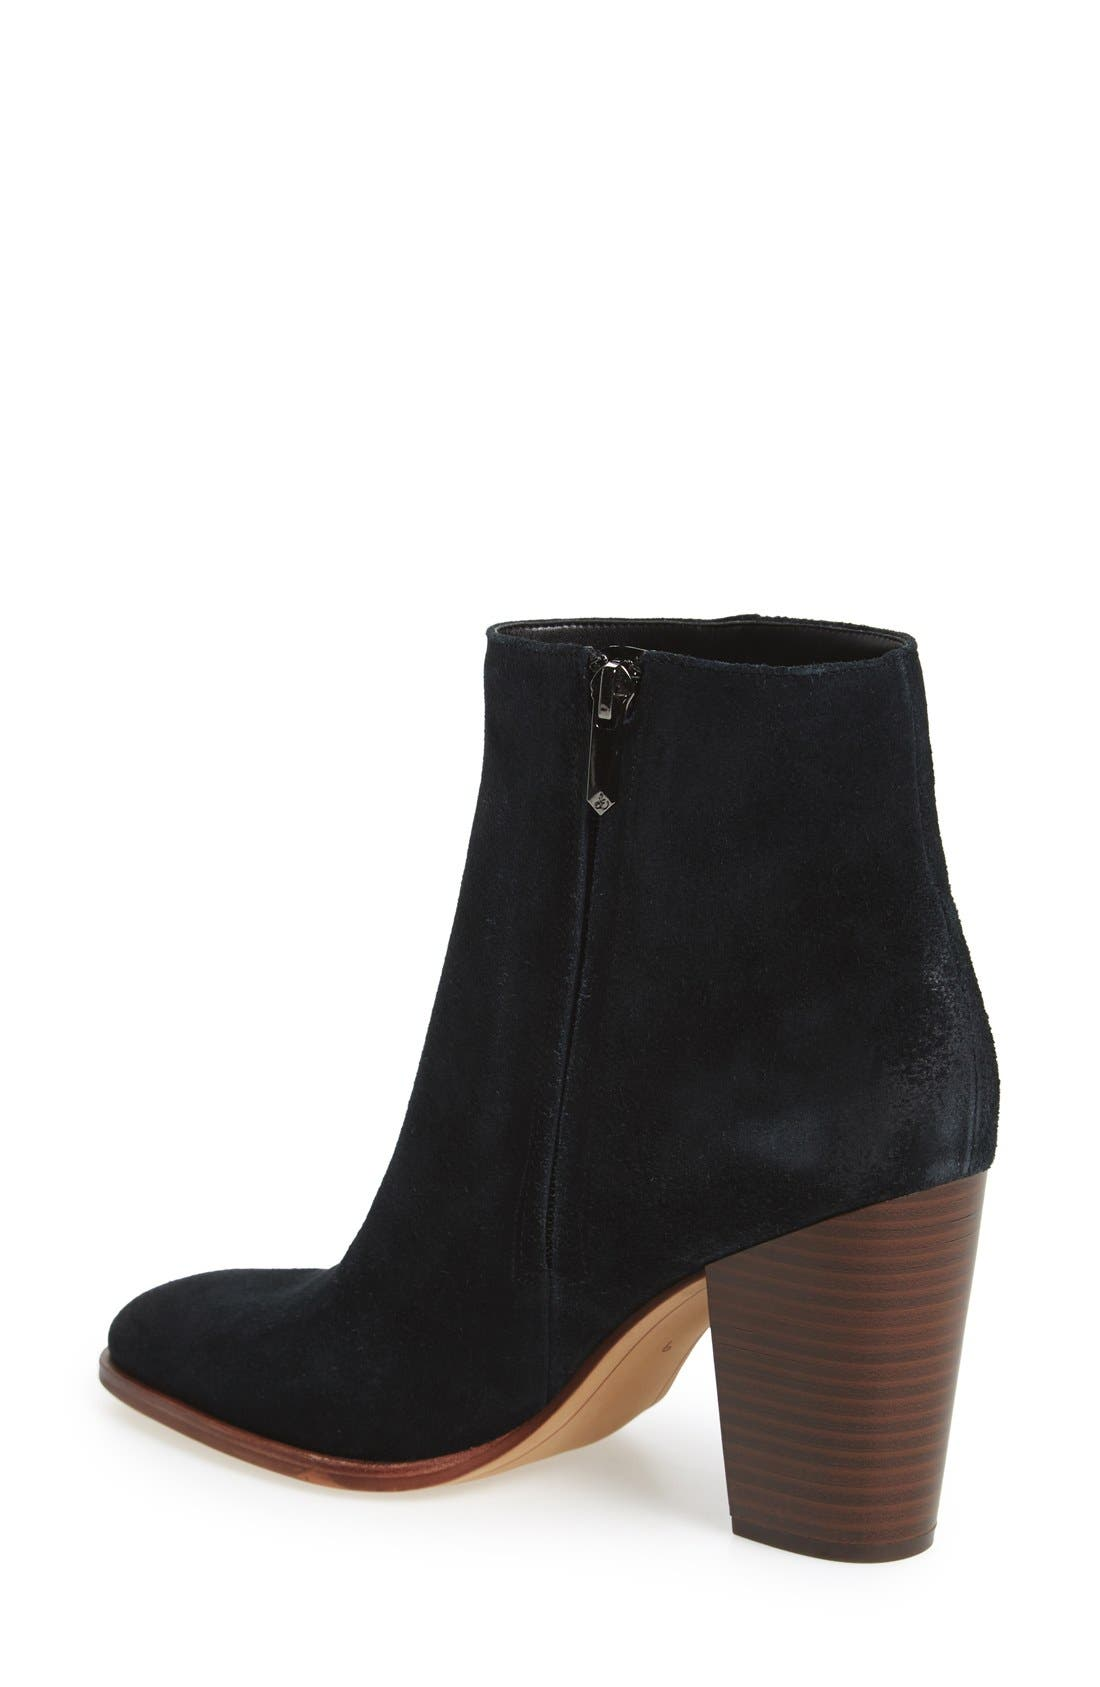 SAM EDELMAN, 'Blake' Bootie, Alternate thumbnail 2, color, 002